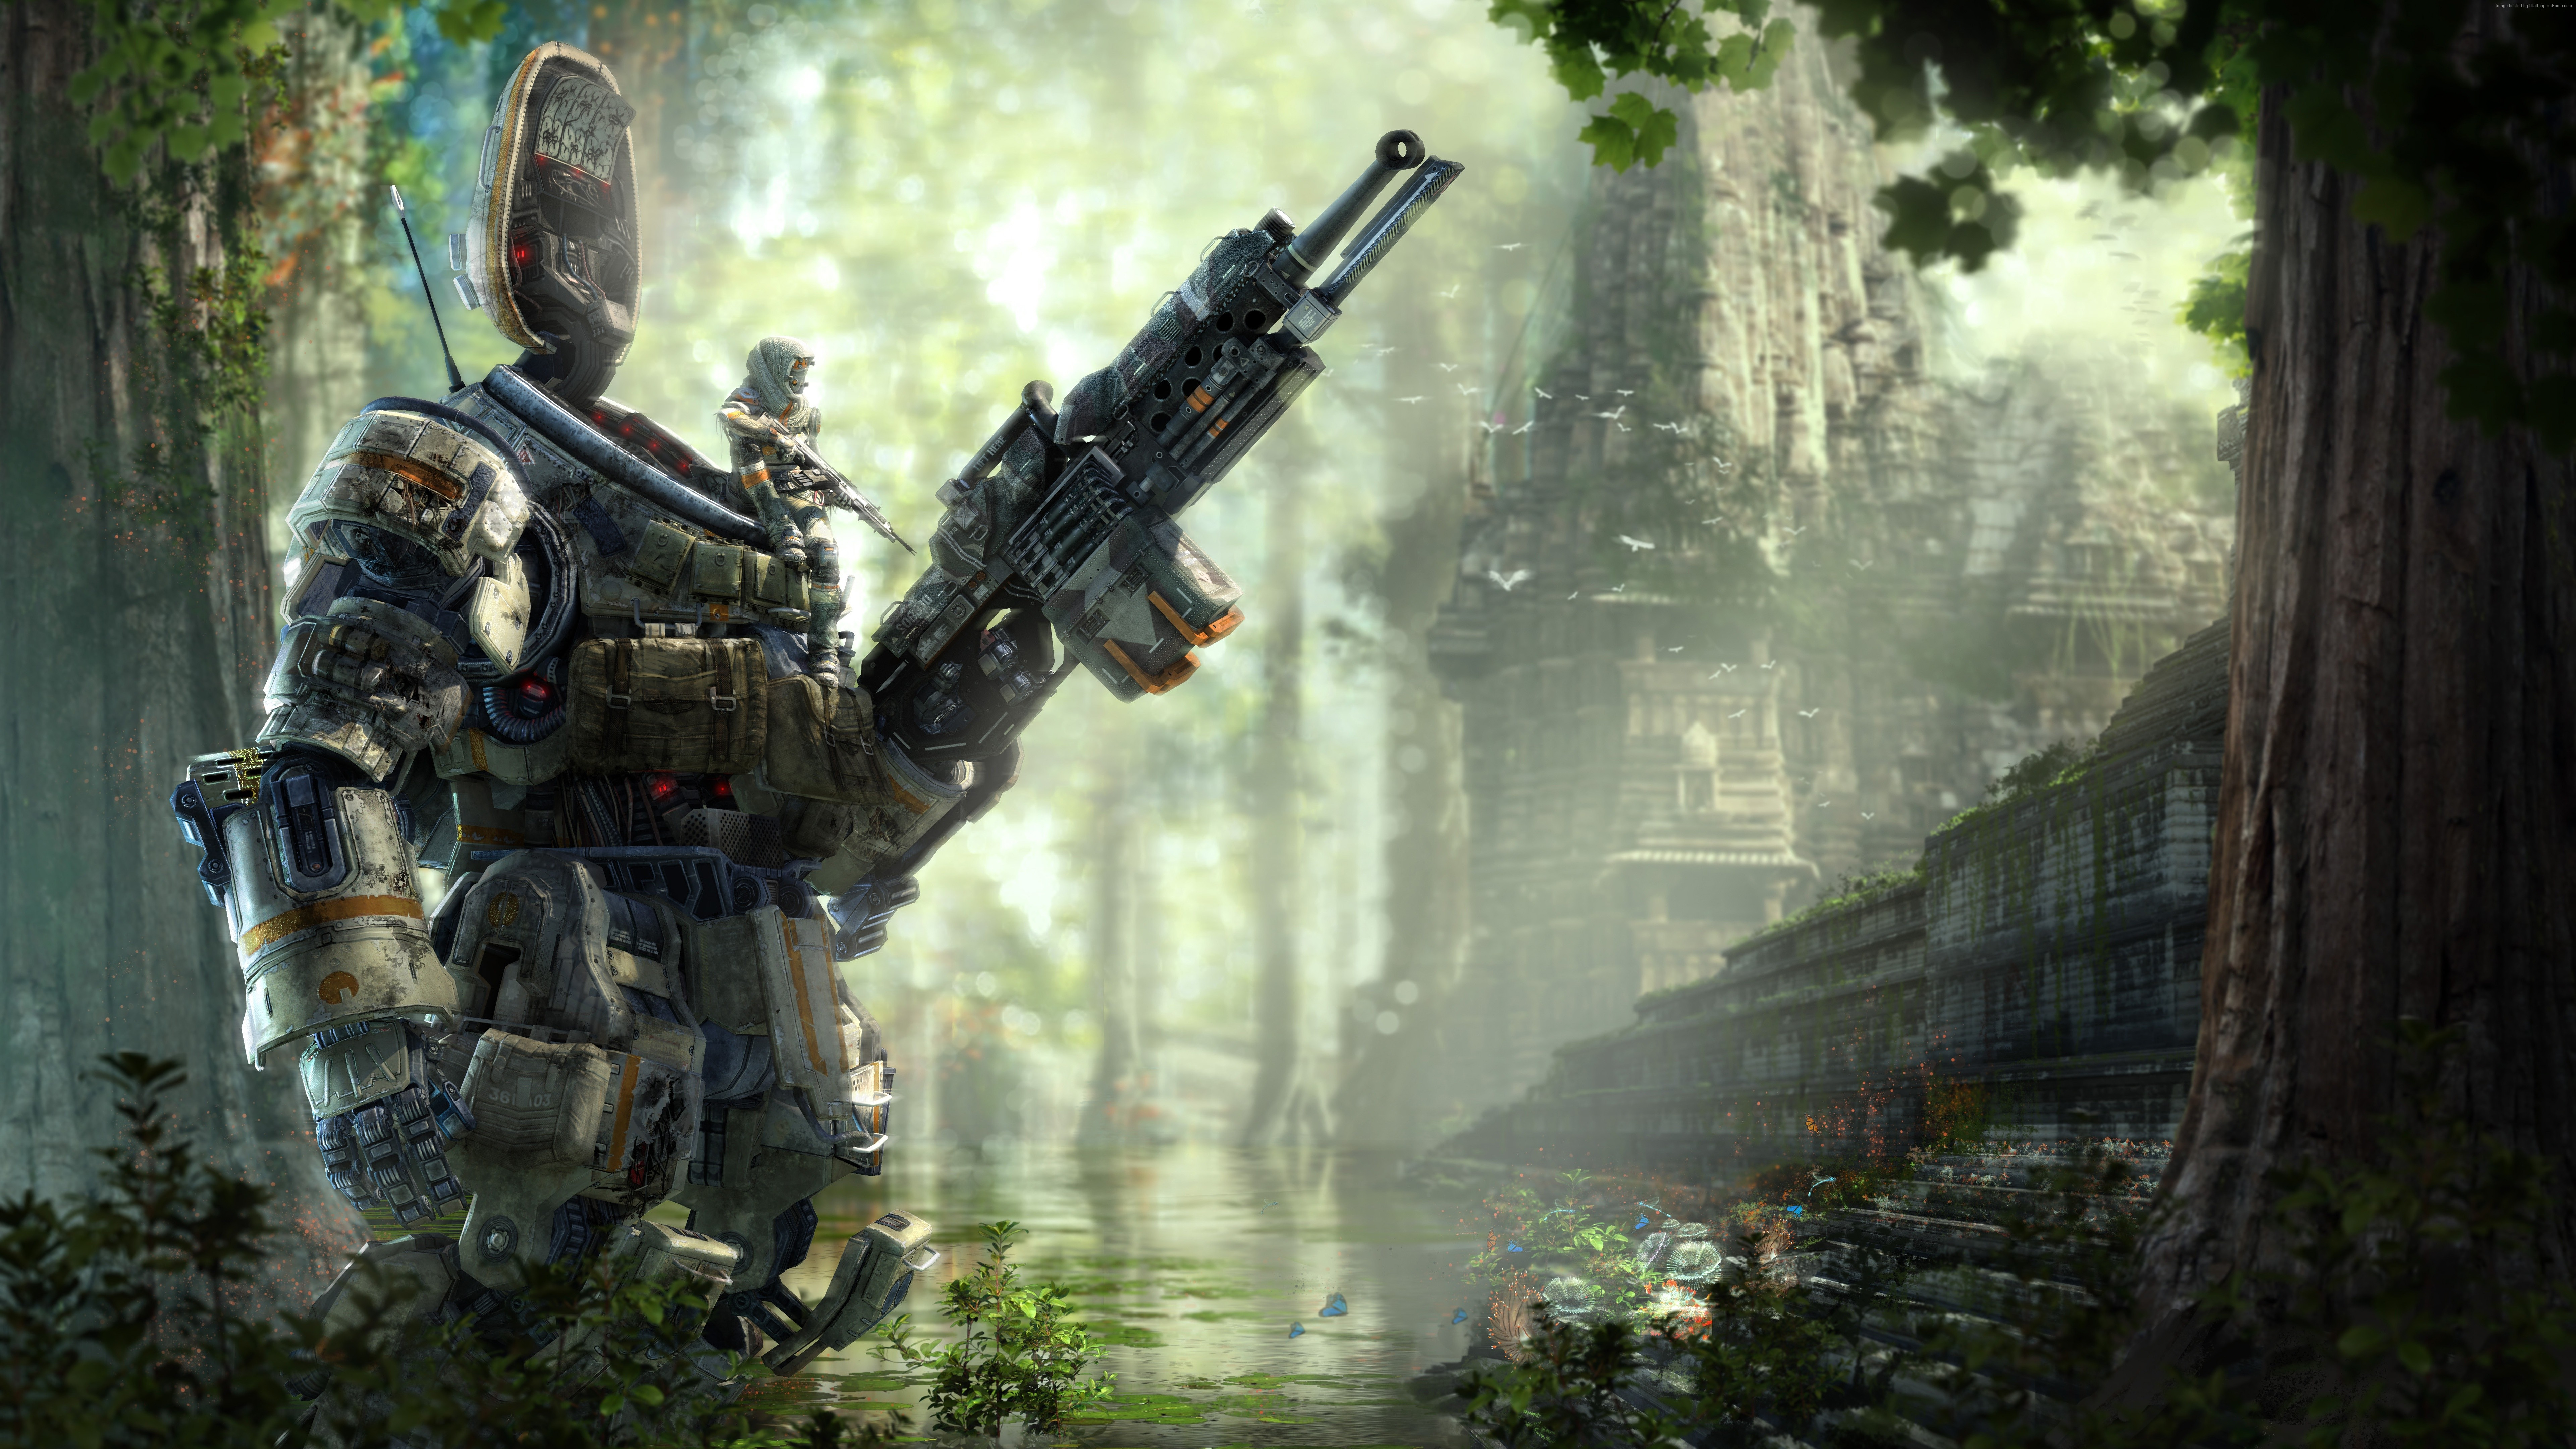 Titanfall 2 Wallpapers High Quality , HD Wallpaper & Backgrounds